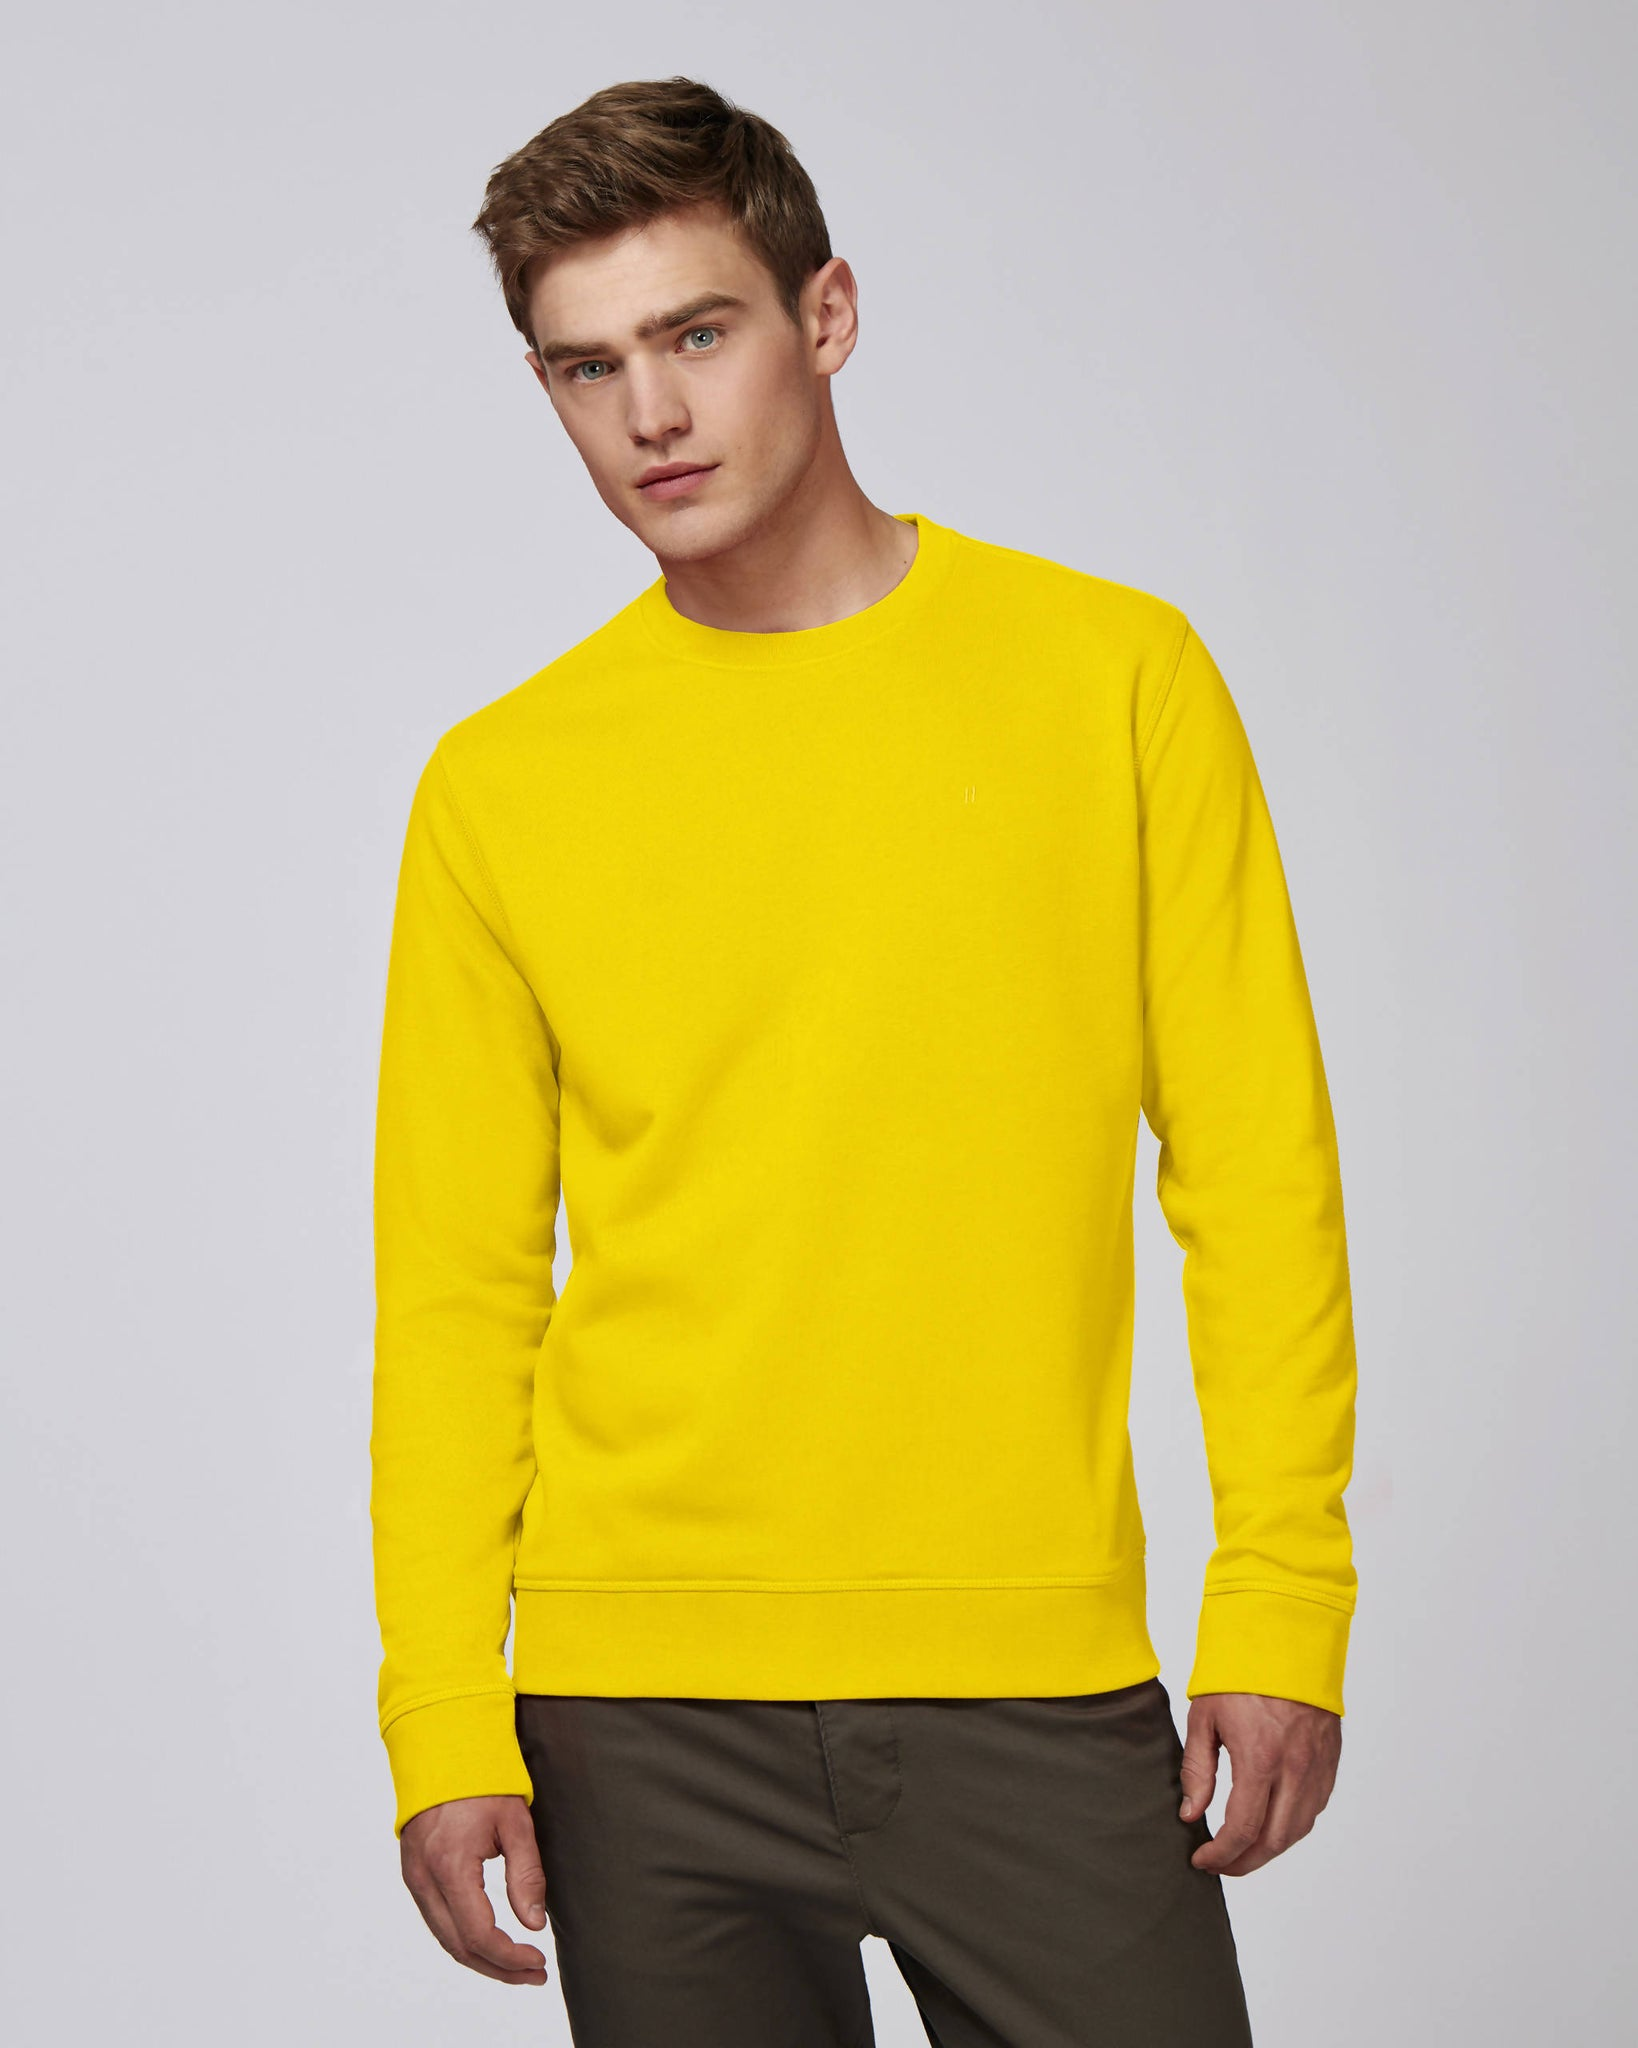 Sweat-shirt col rond jaune